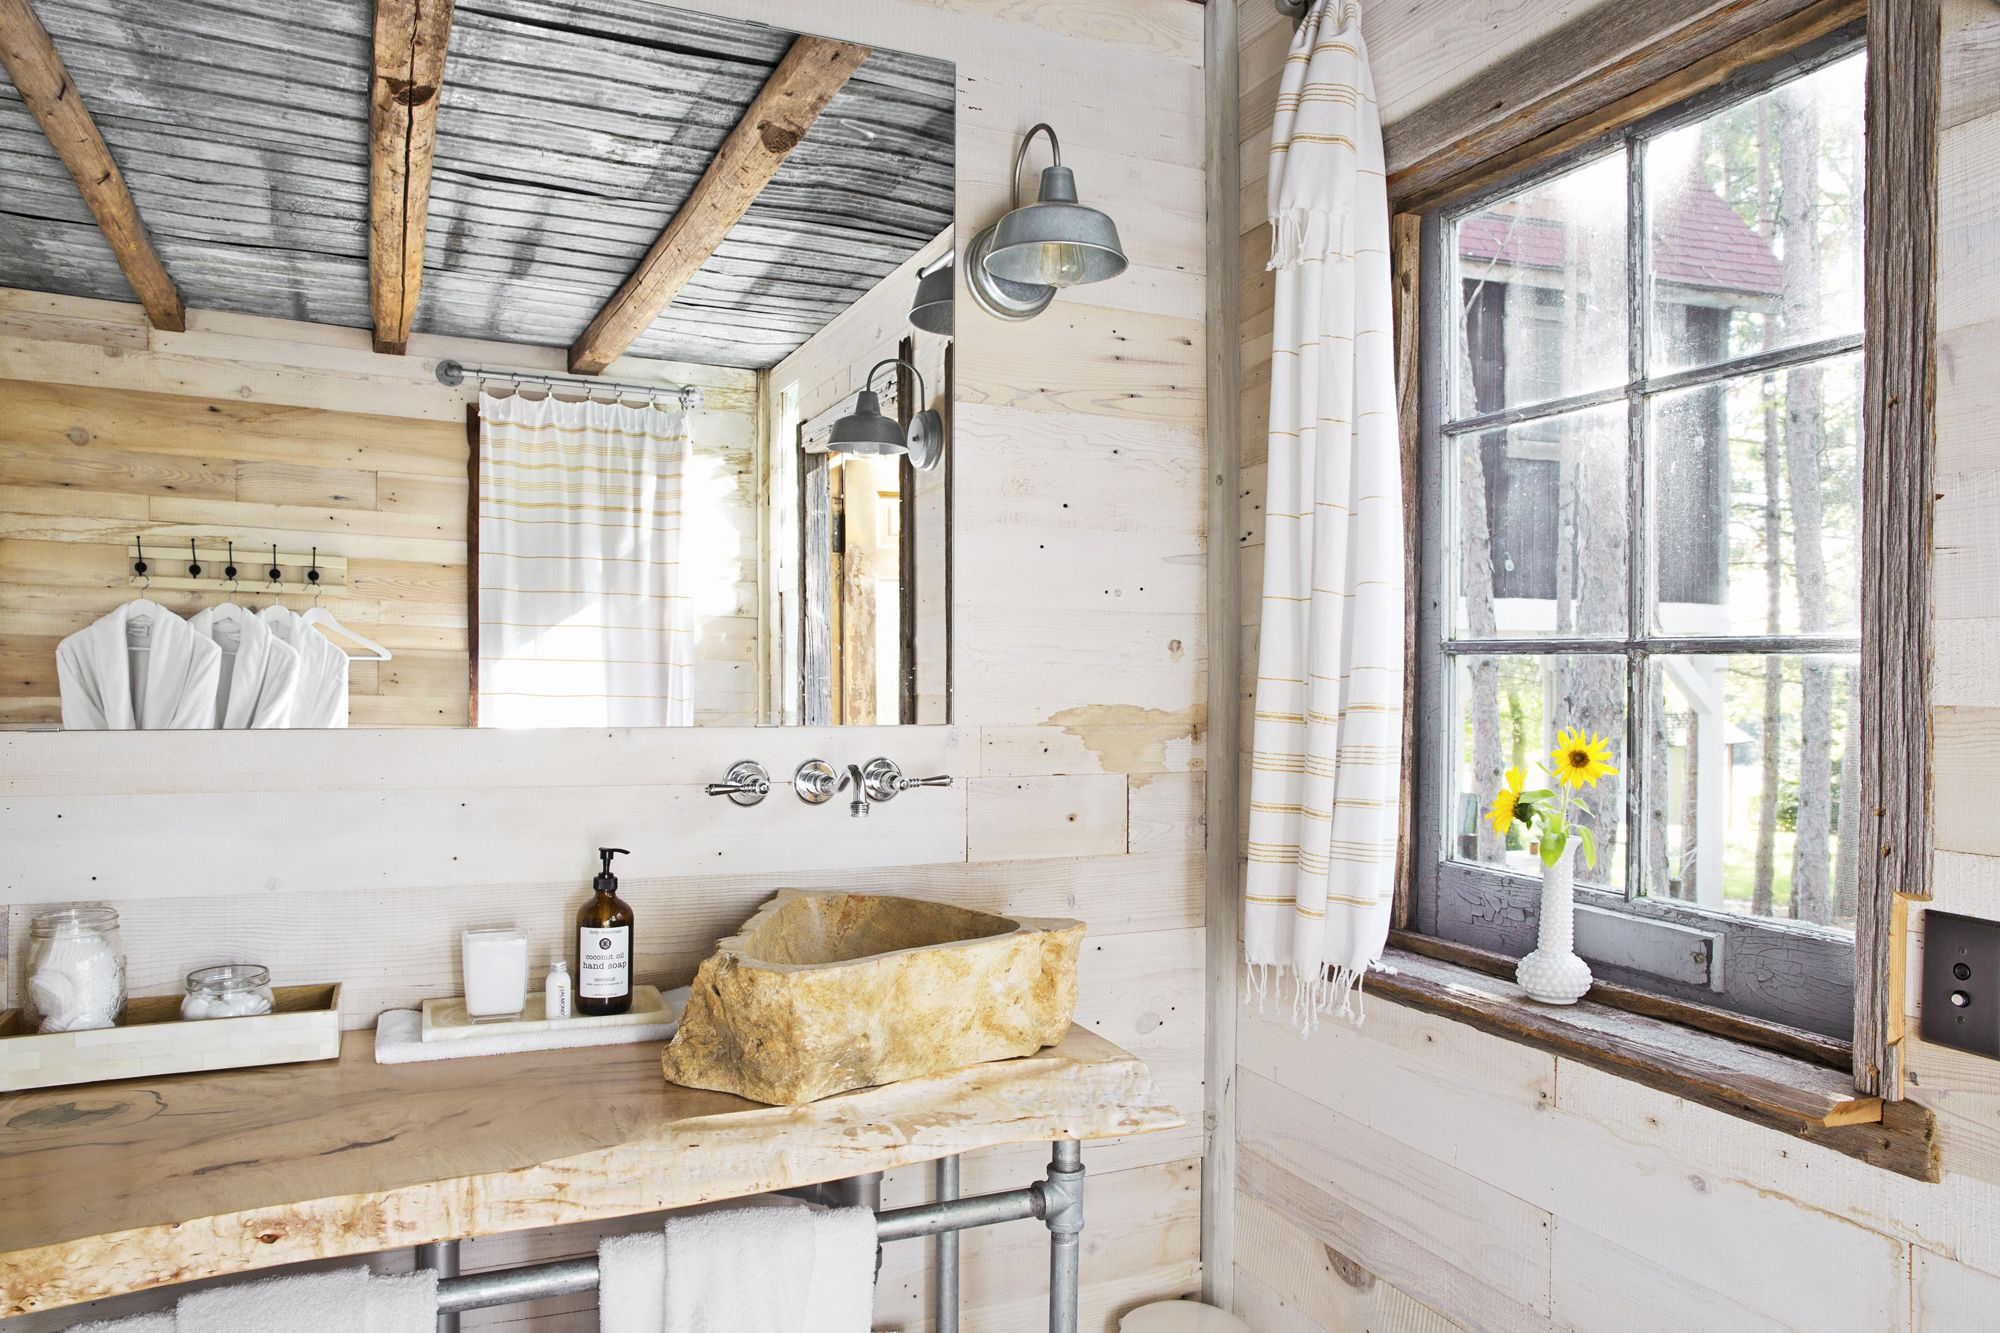 25 Big Storage Ideas for Small Bathrooms